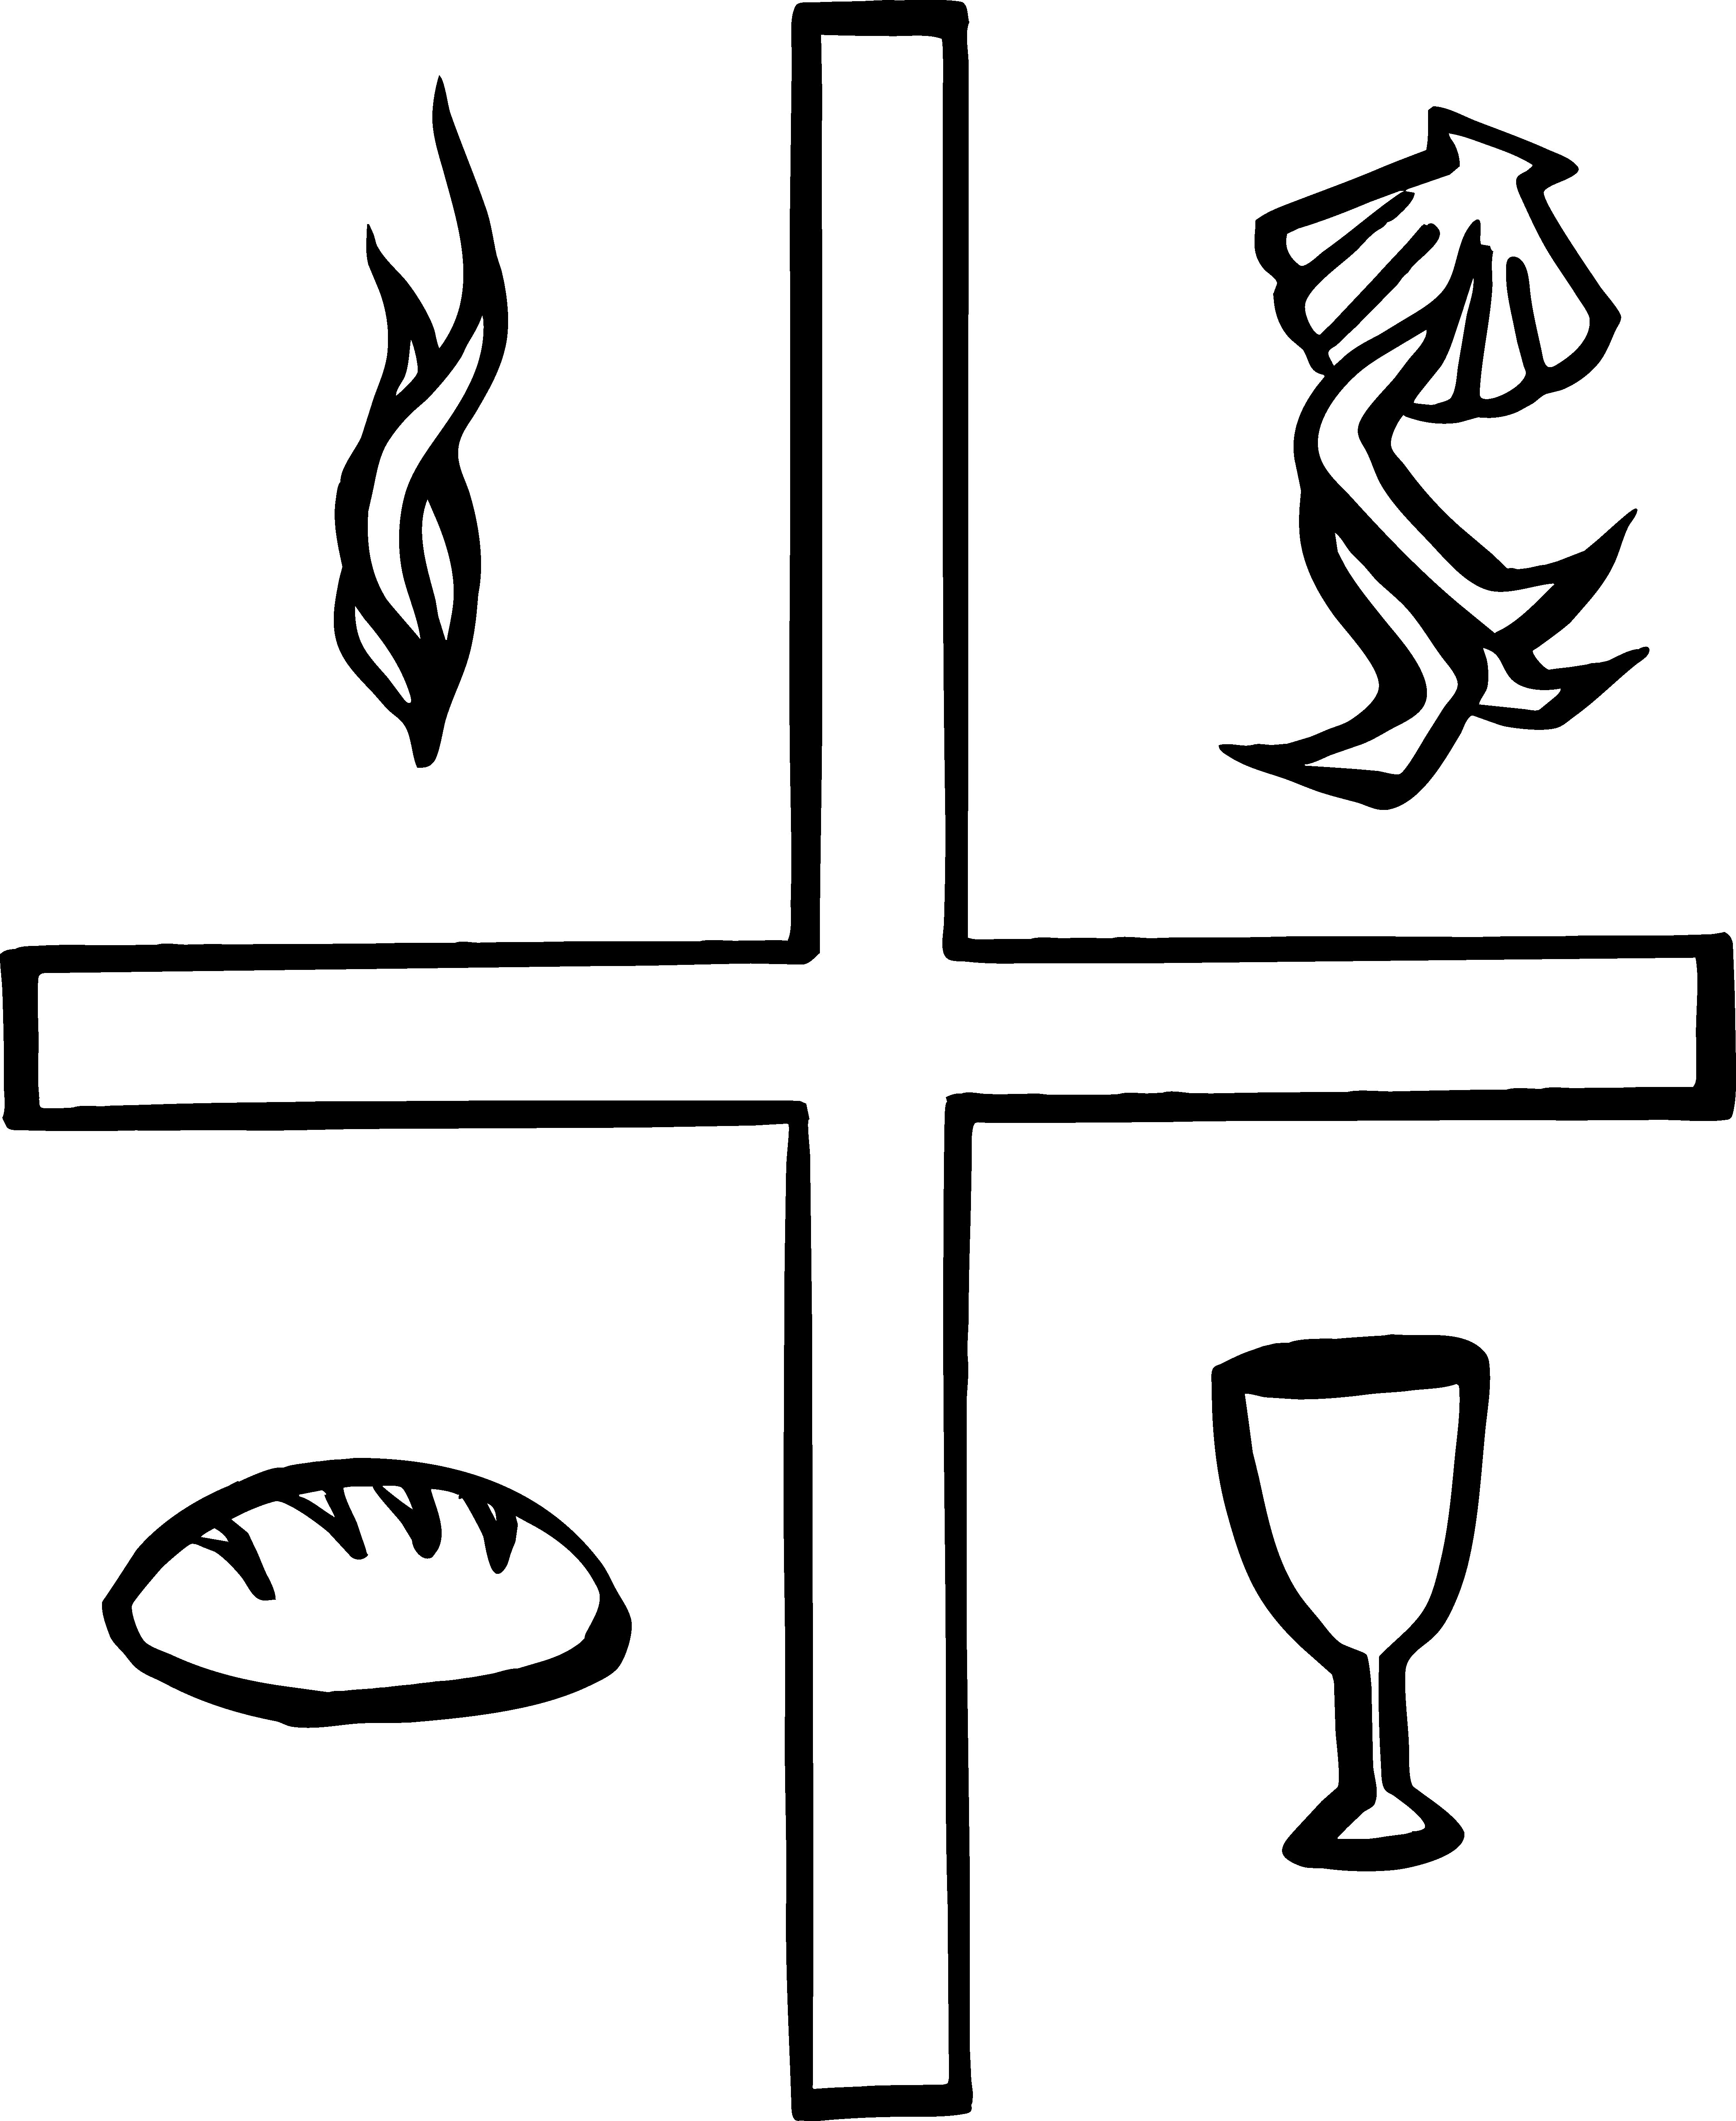 icon2-easter-7-02-bw-clip-art_987